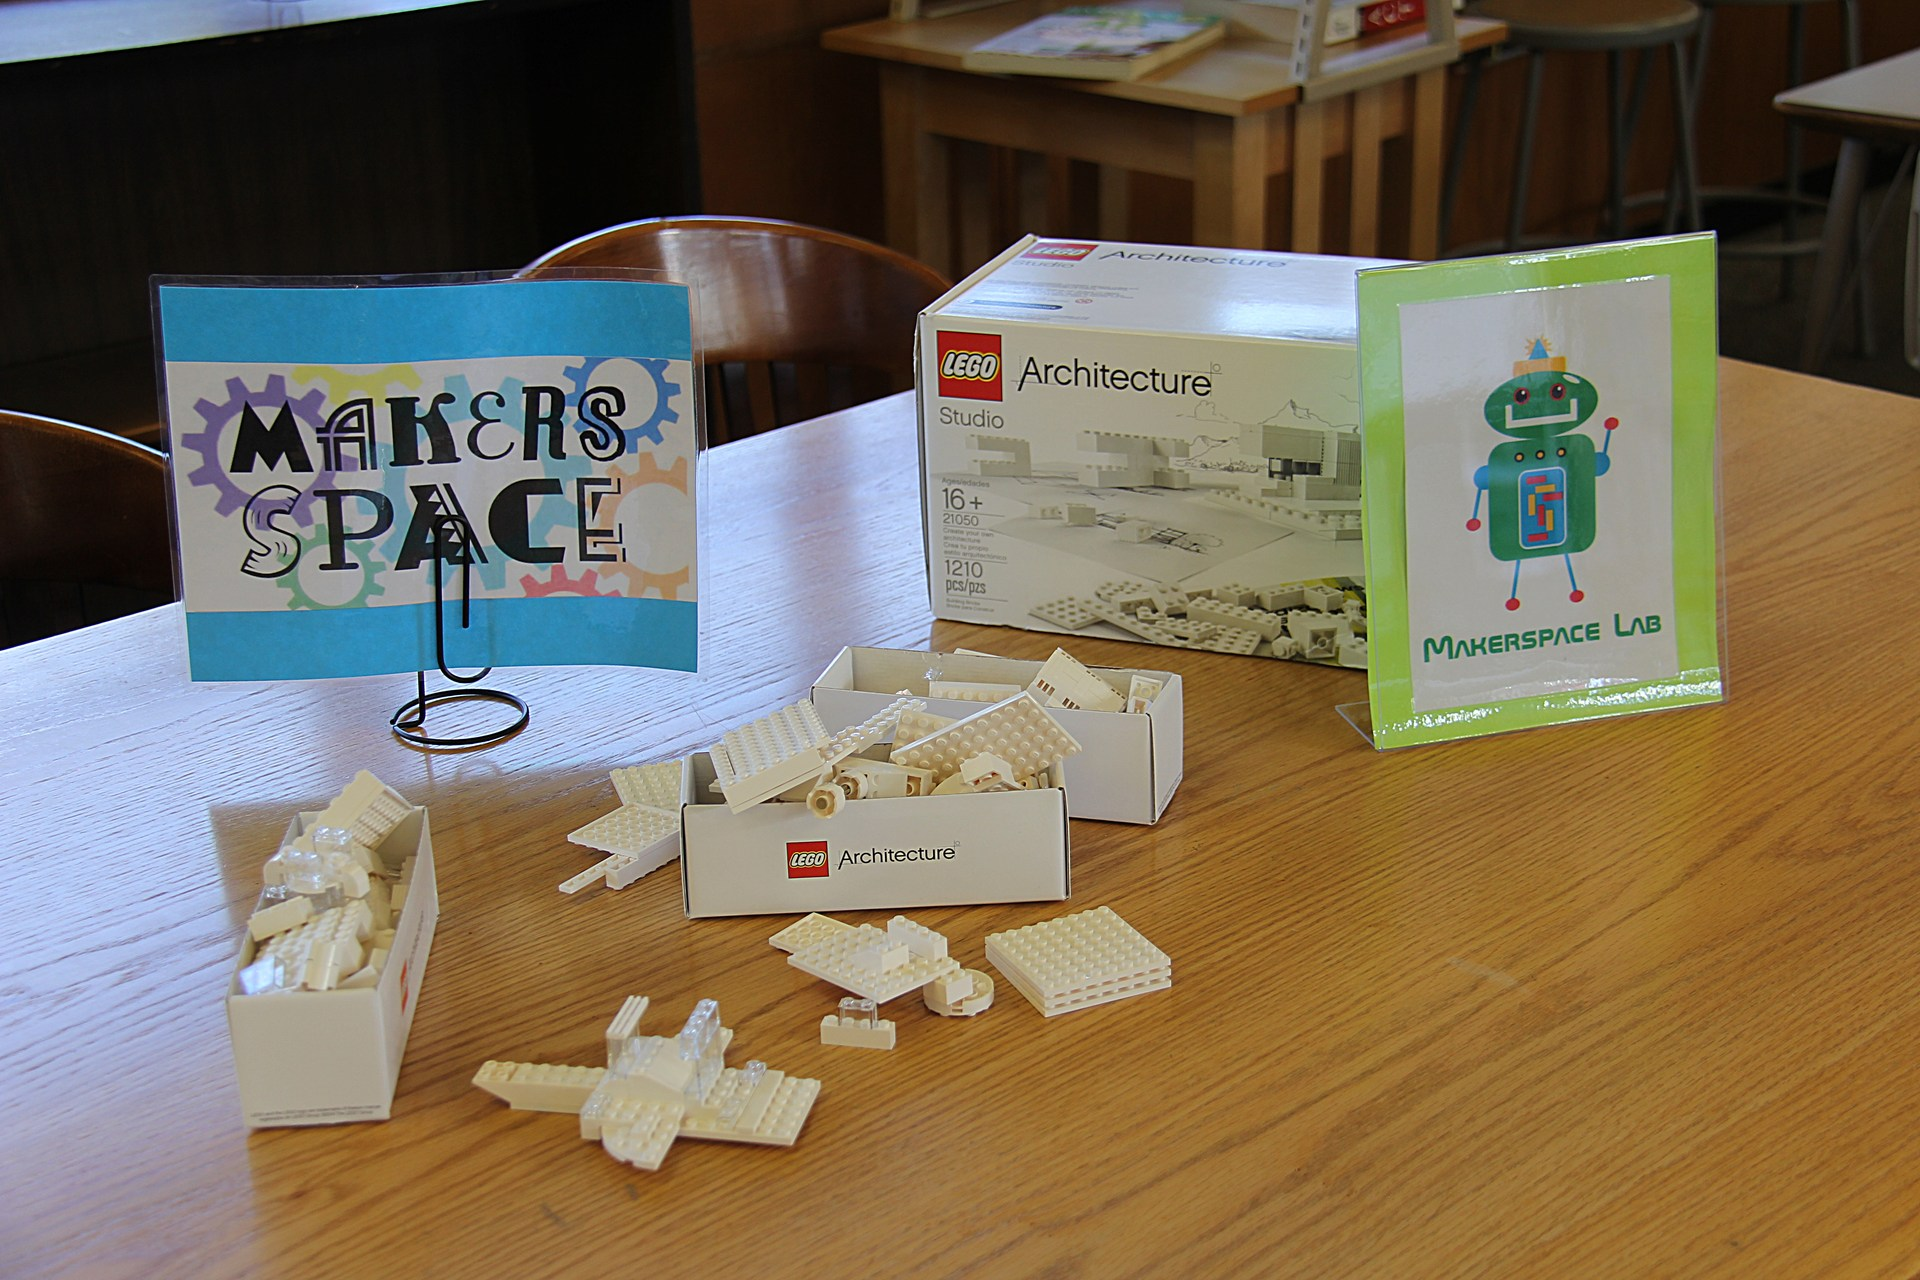 Image of Makerspace station in Library